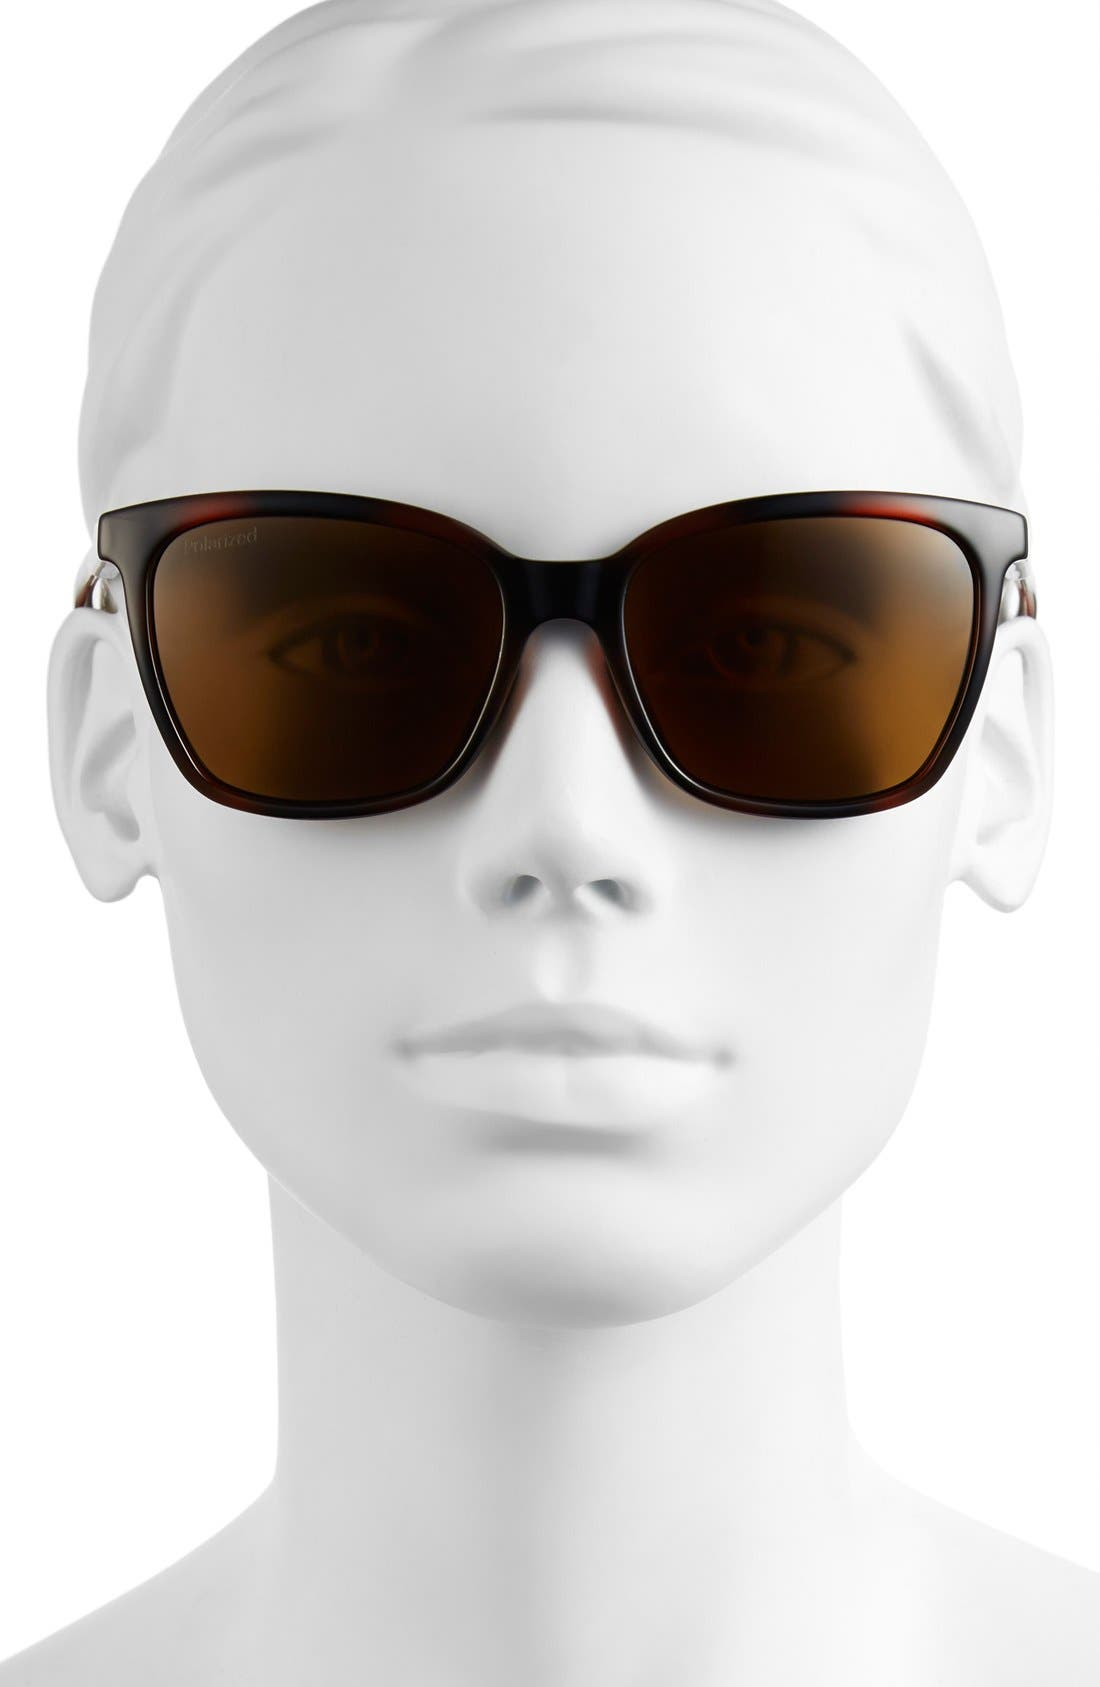 'Colette' 55mm Polarized Sunglasses,                             Alternate thumbnail 2, color,                             Tortoise/ Polar Brown